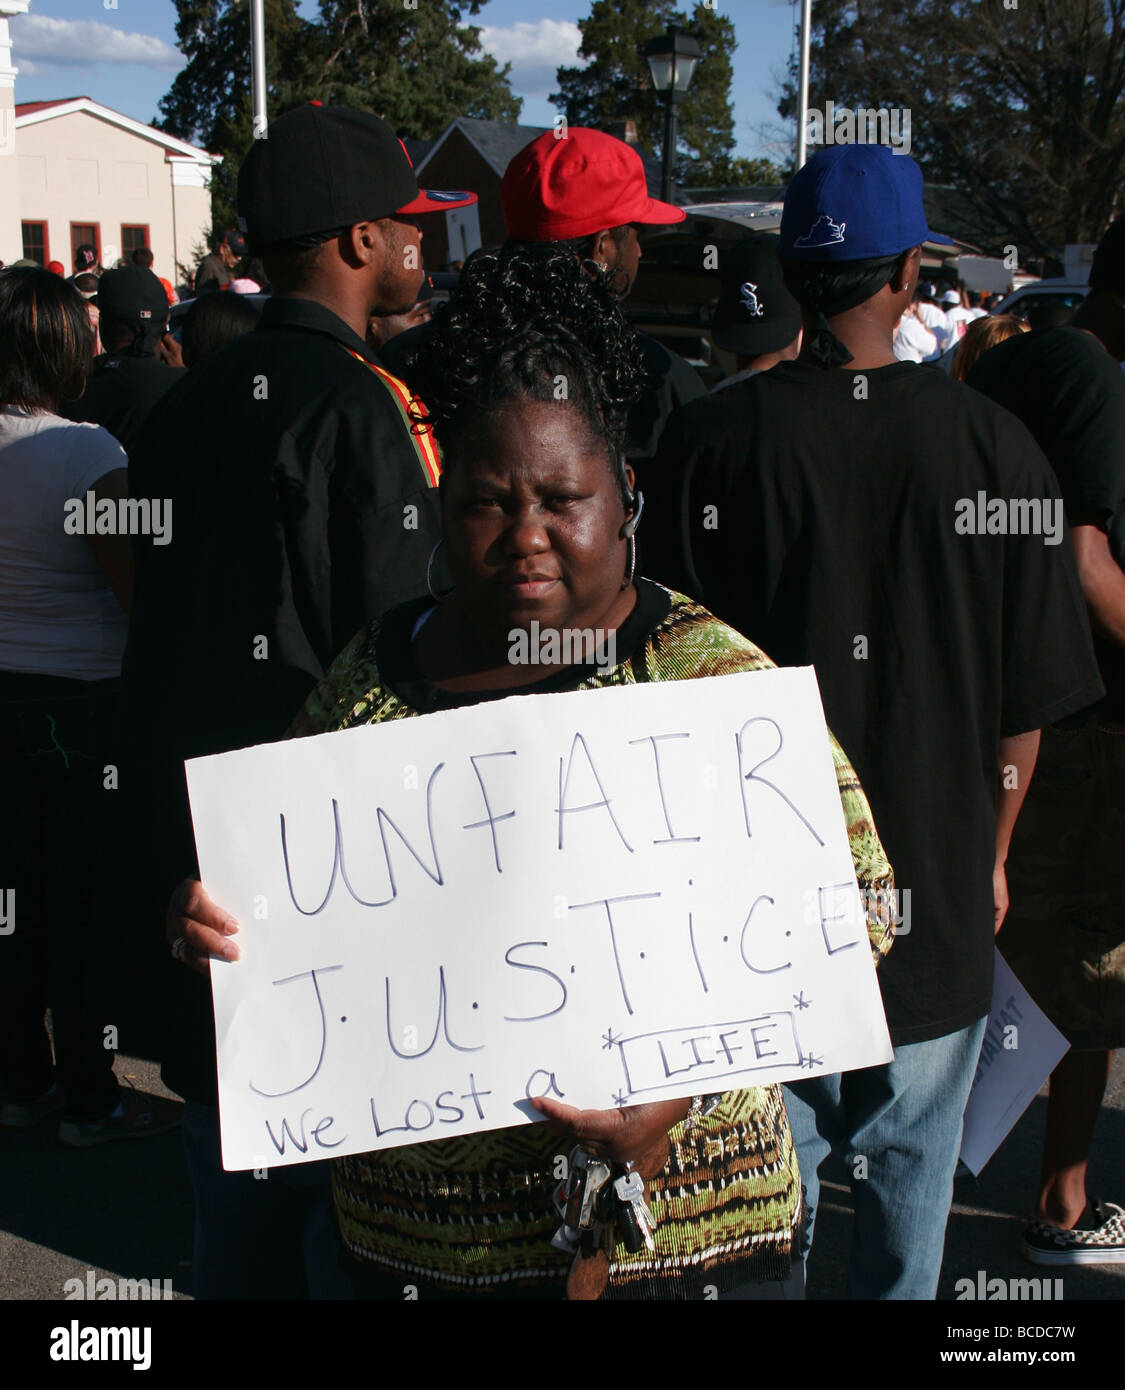 Protesters march to the powhatan courthouse in the Taliek Taliaferro murder case. Powhatan, Virginia 2009 - Stock Image